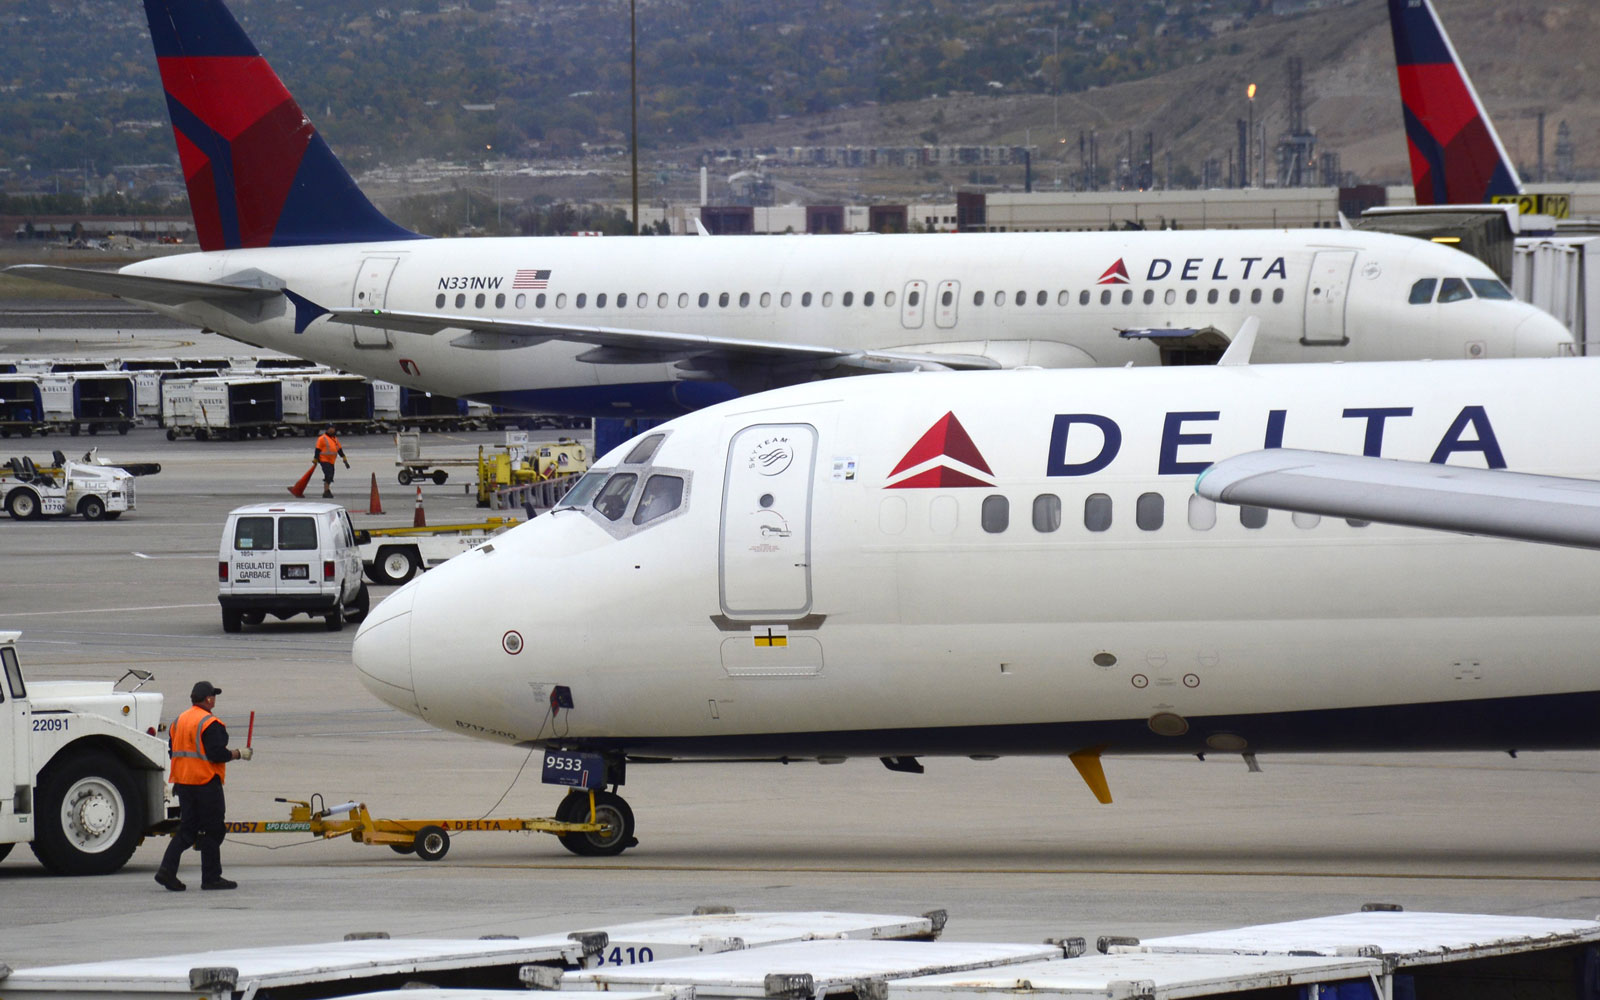 Why Delta's Ban on Ranting Trump Supporter Is Significant